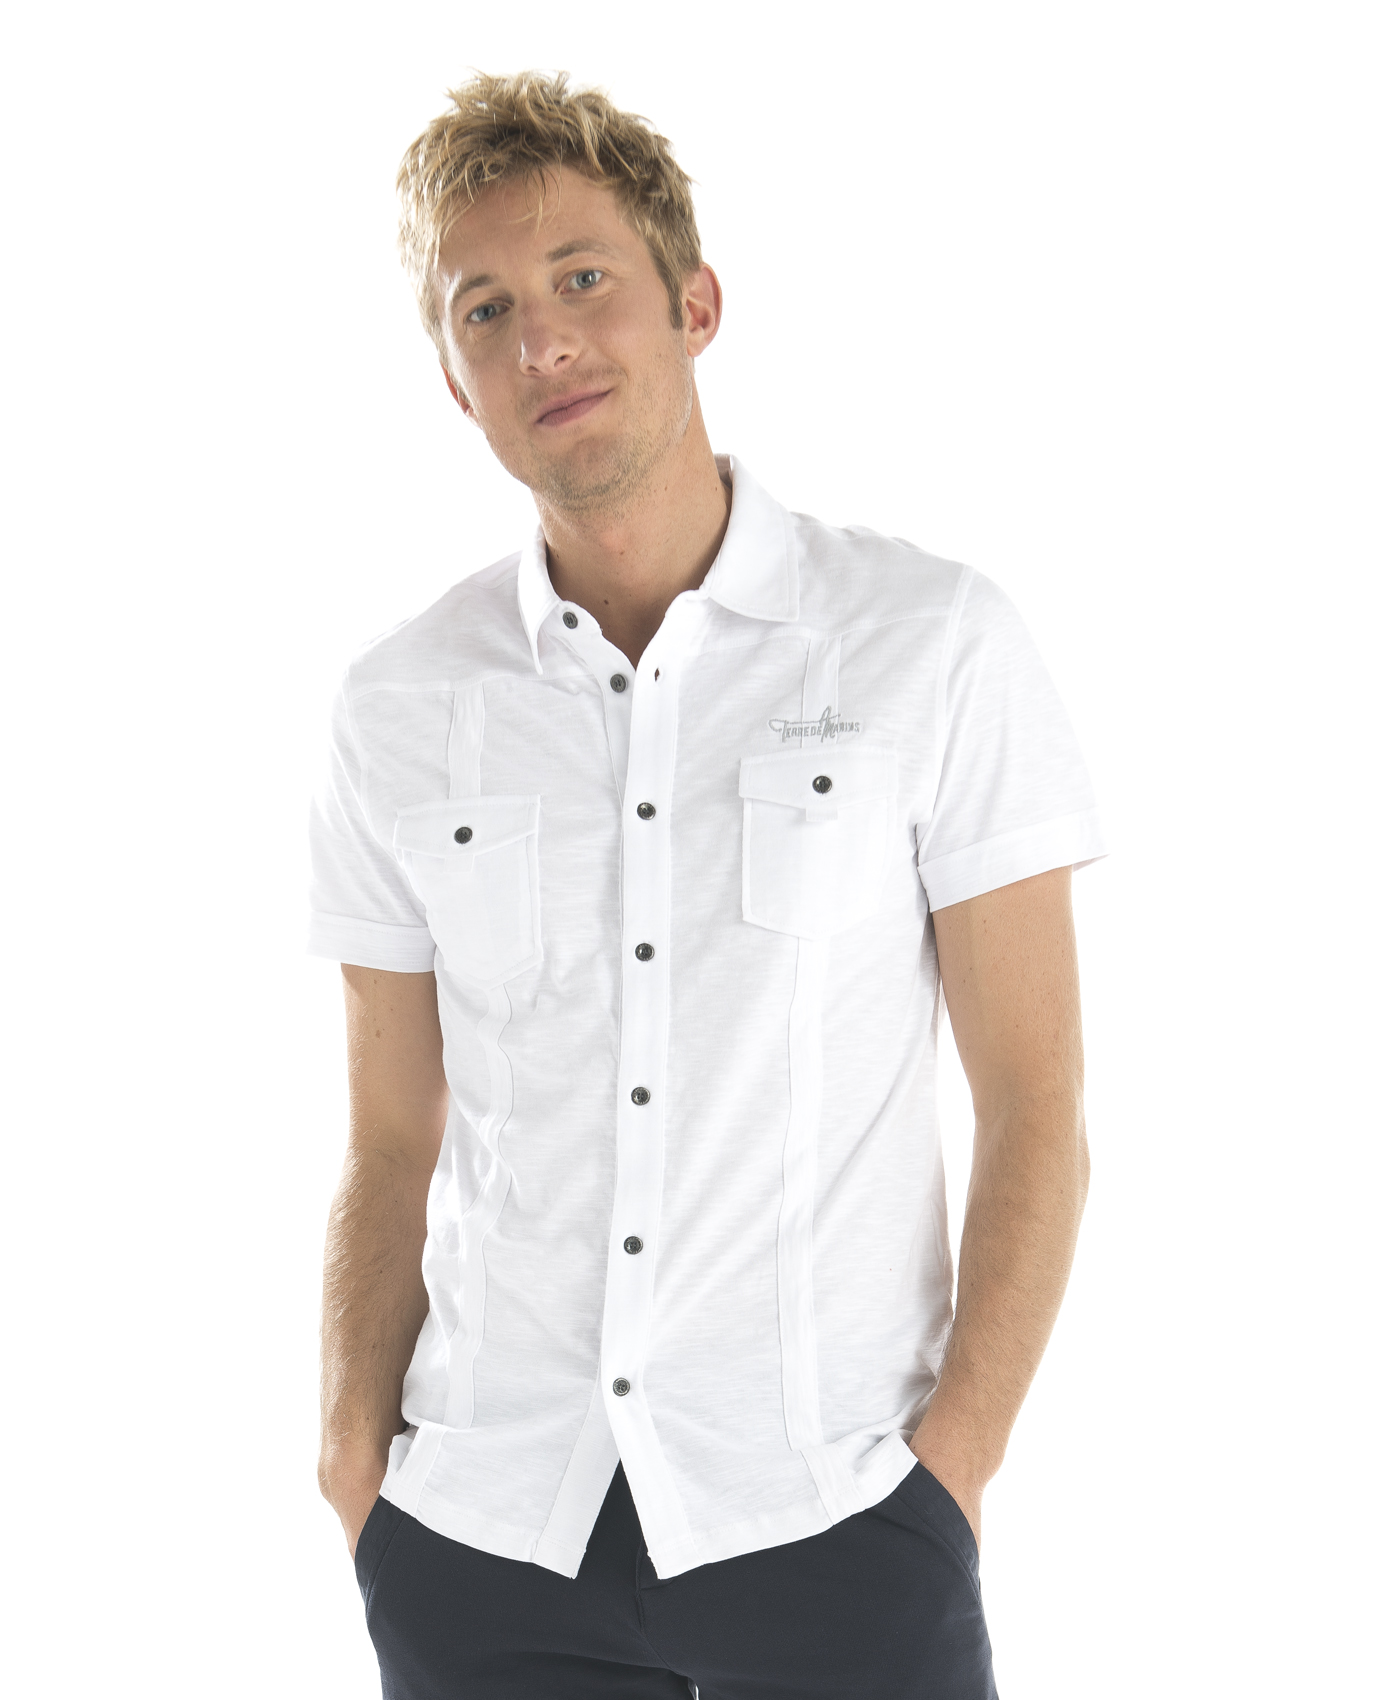 Chemise manches courtes blanche_0